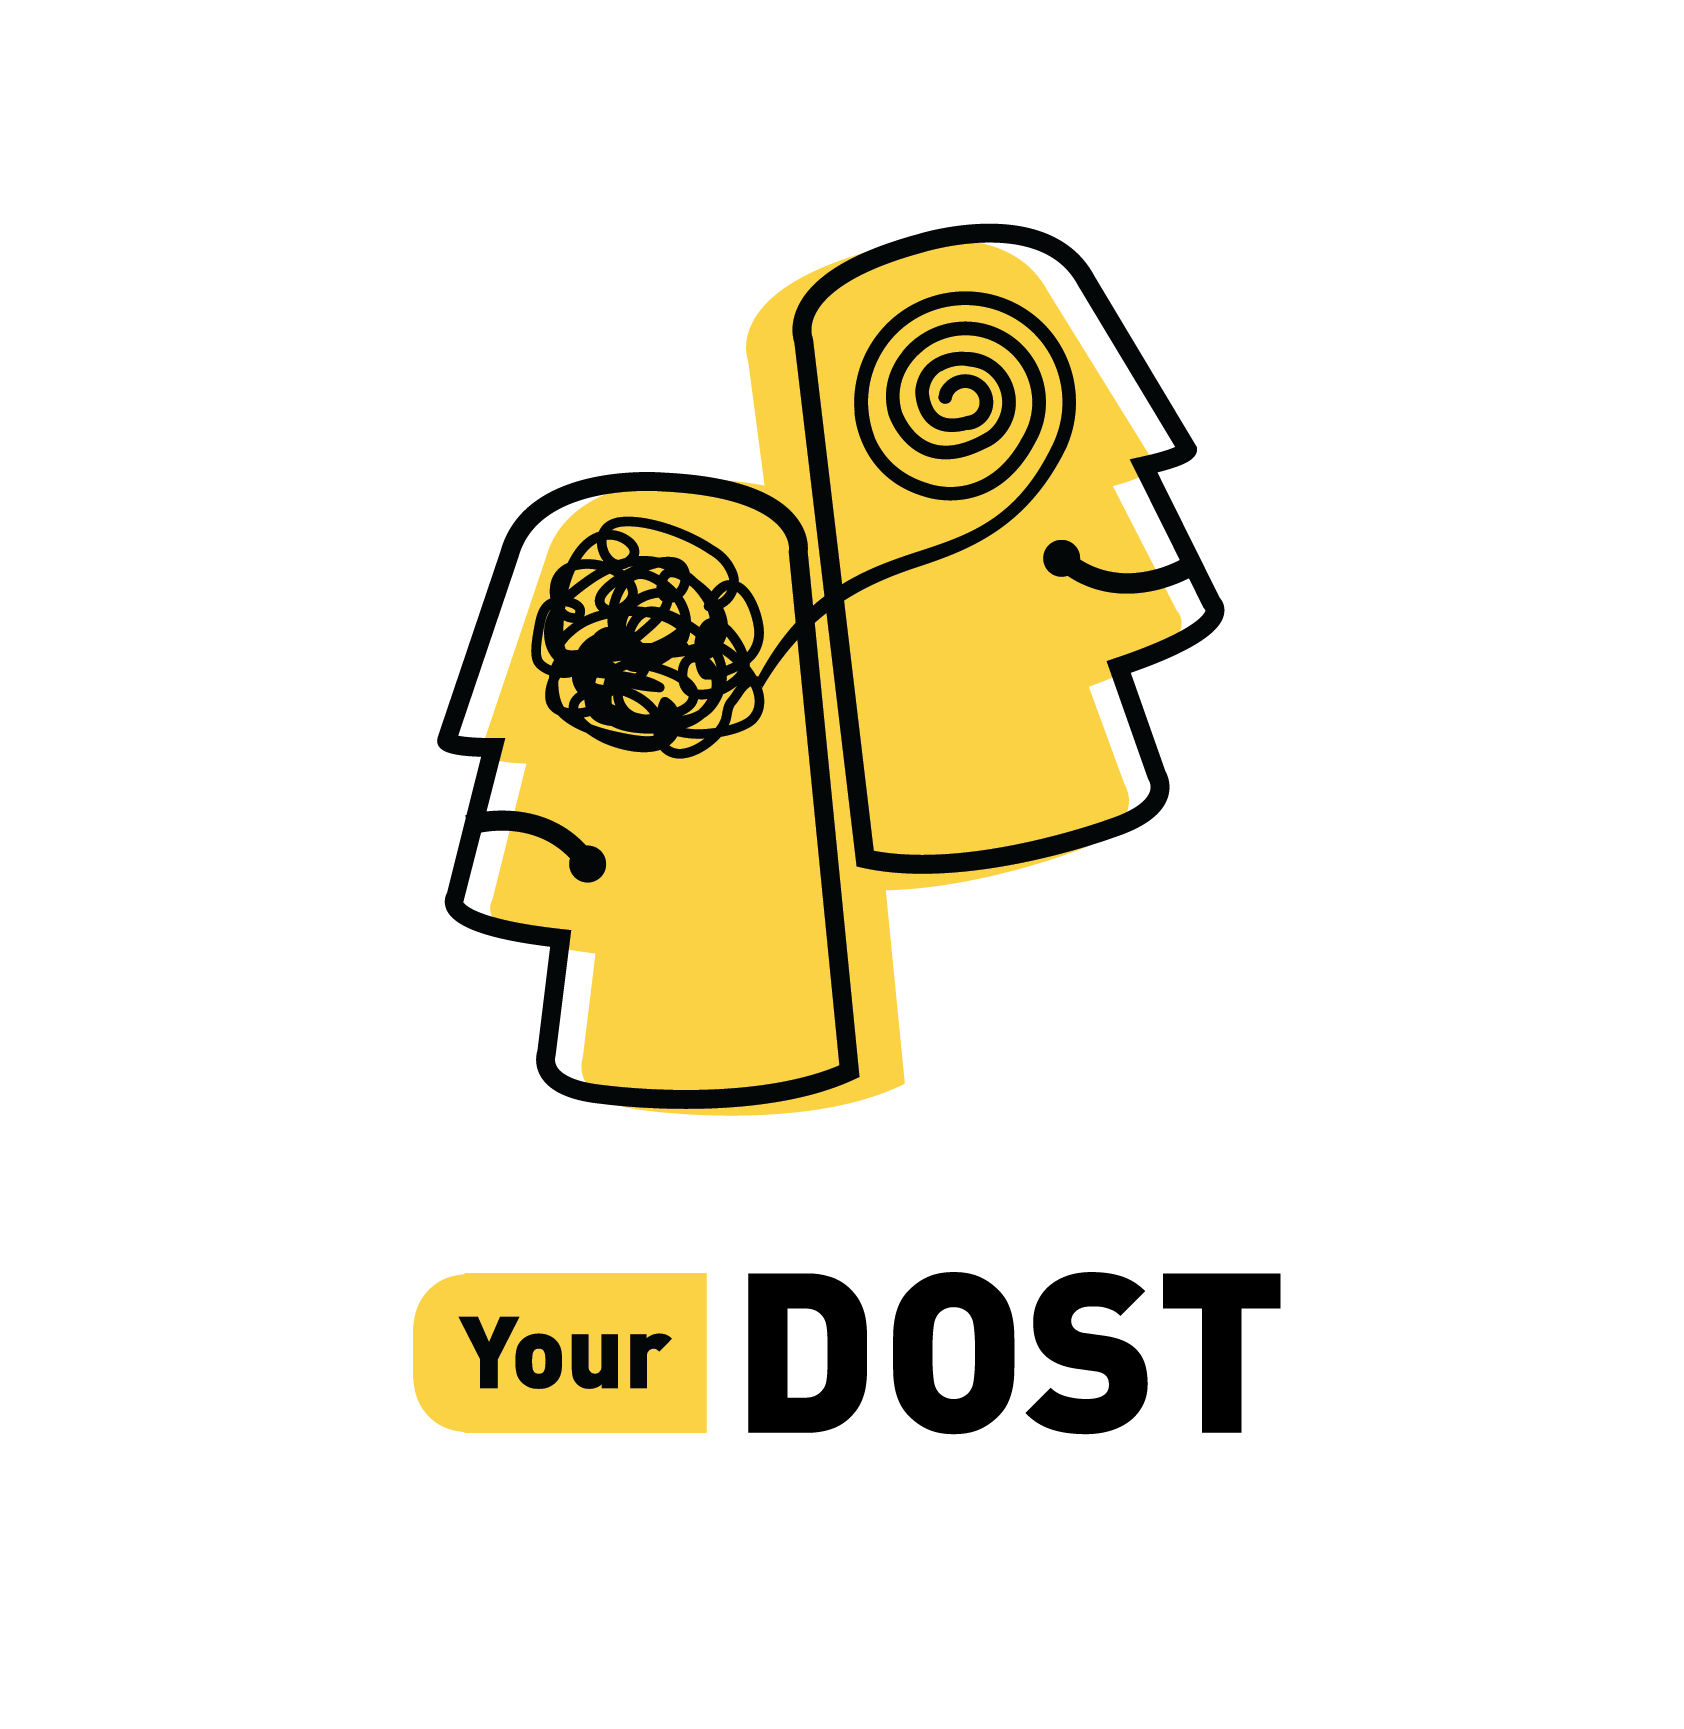 YourDOST: Online Counselling & Emotional Wellness Coach